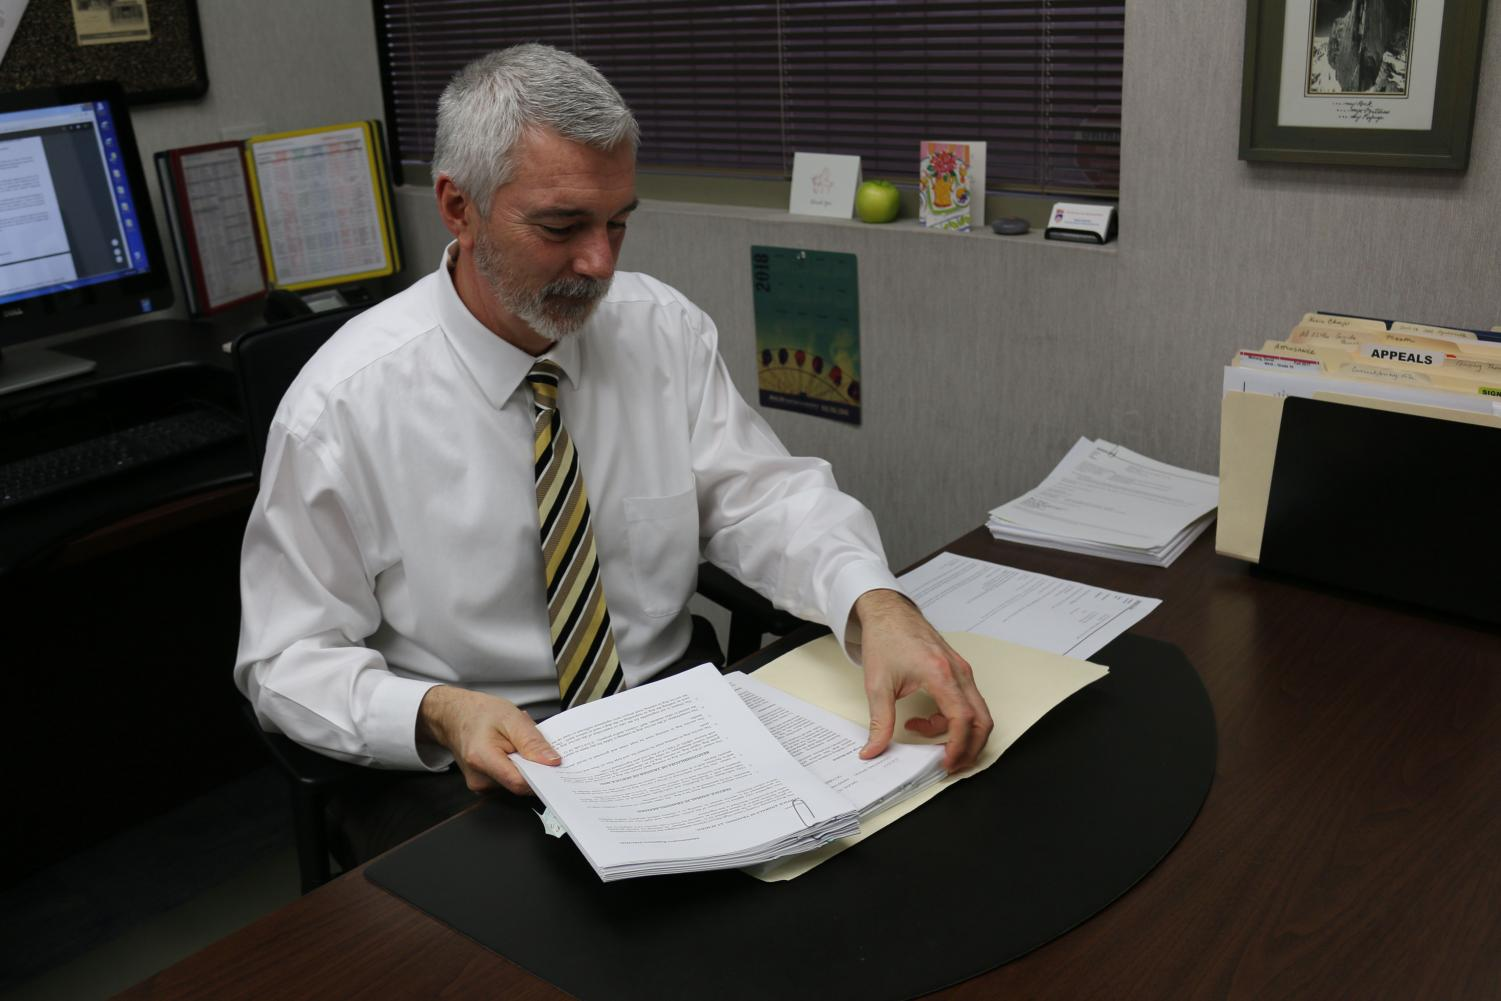 (CAM MEDRANO/EYE OF THE TIGER)  RJUHSD executive director of Personnel Services Brad Basham works in his office. Basham said tenure has the ability to impede district disiplinary action.